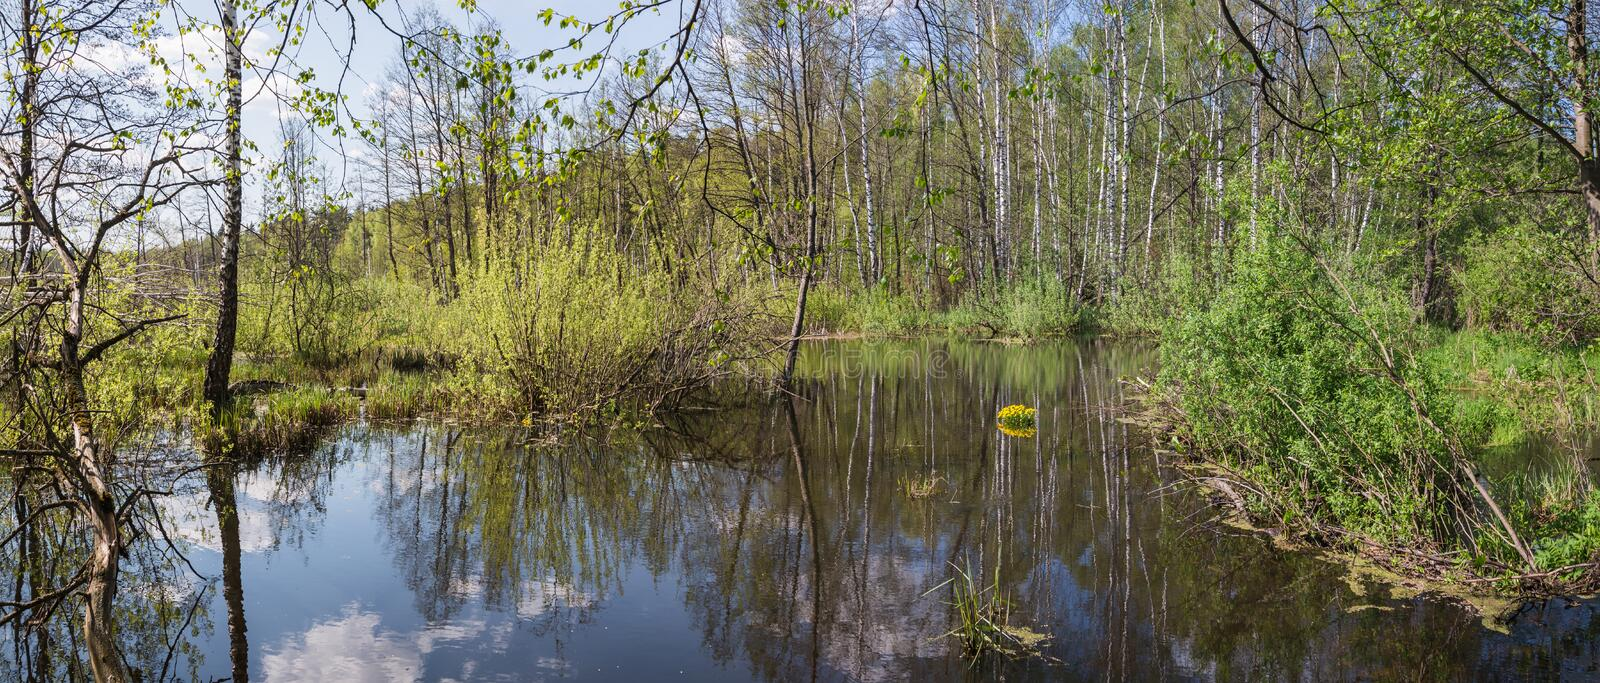 Pekhorka river in the reserve `Moose island`. Moscow region. Russian Federation. Spring 2018 stock photos